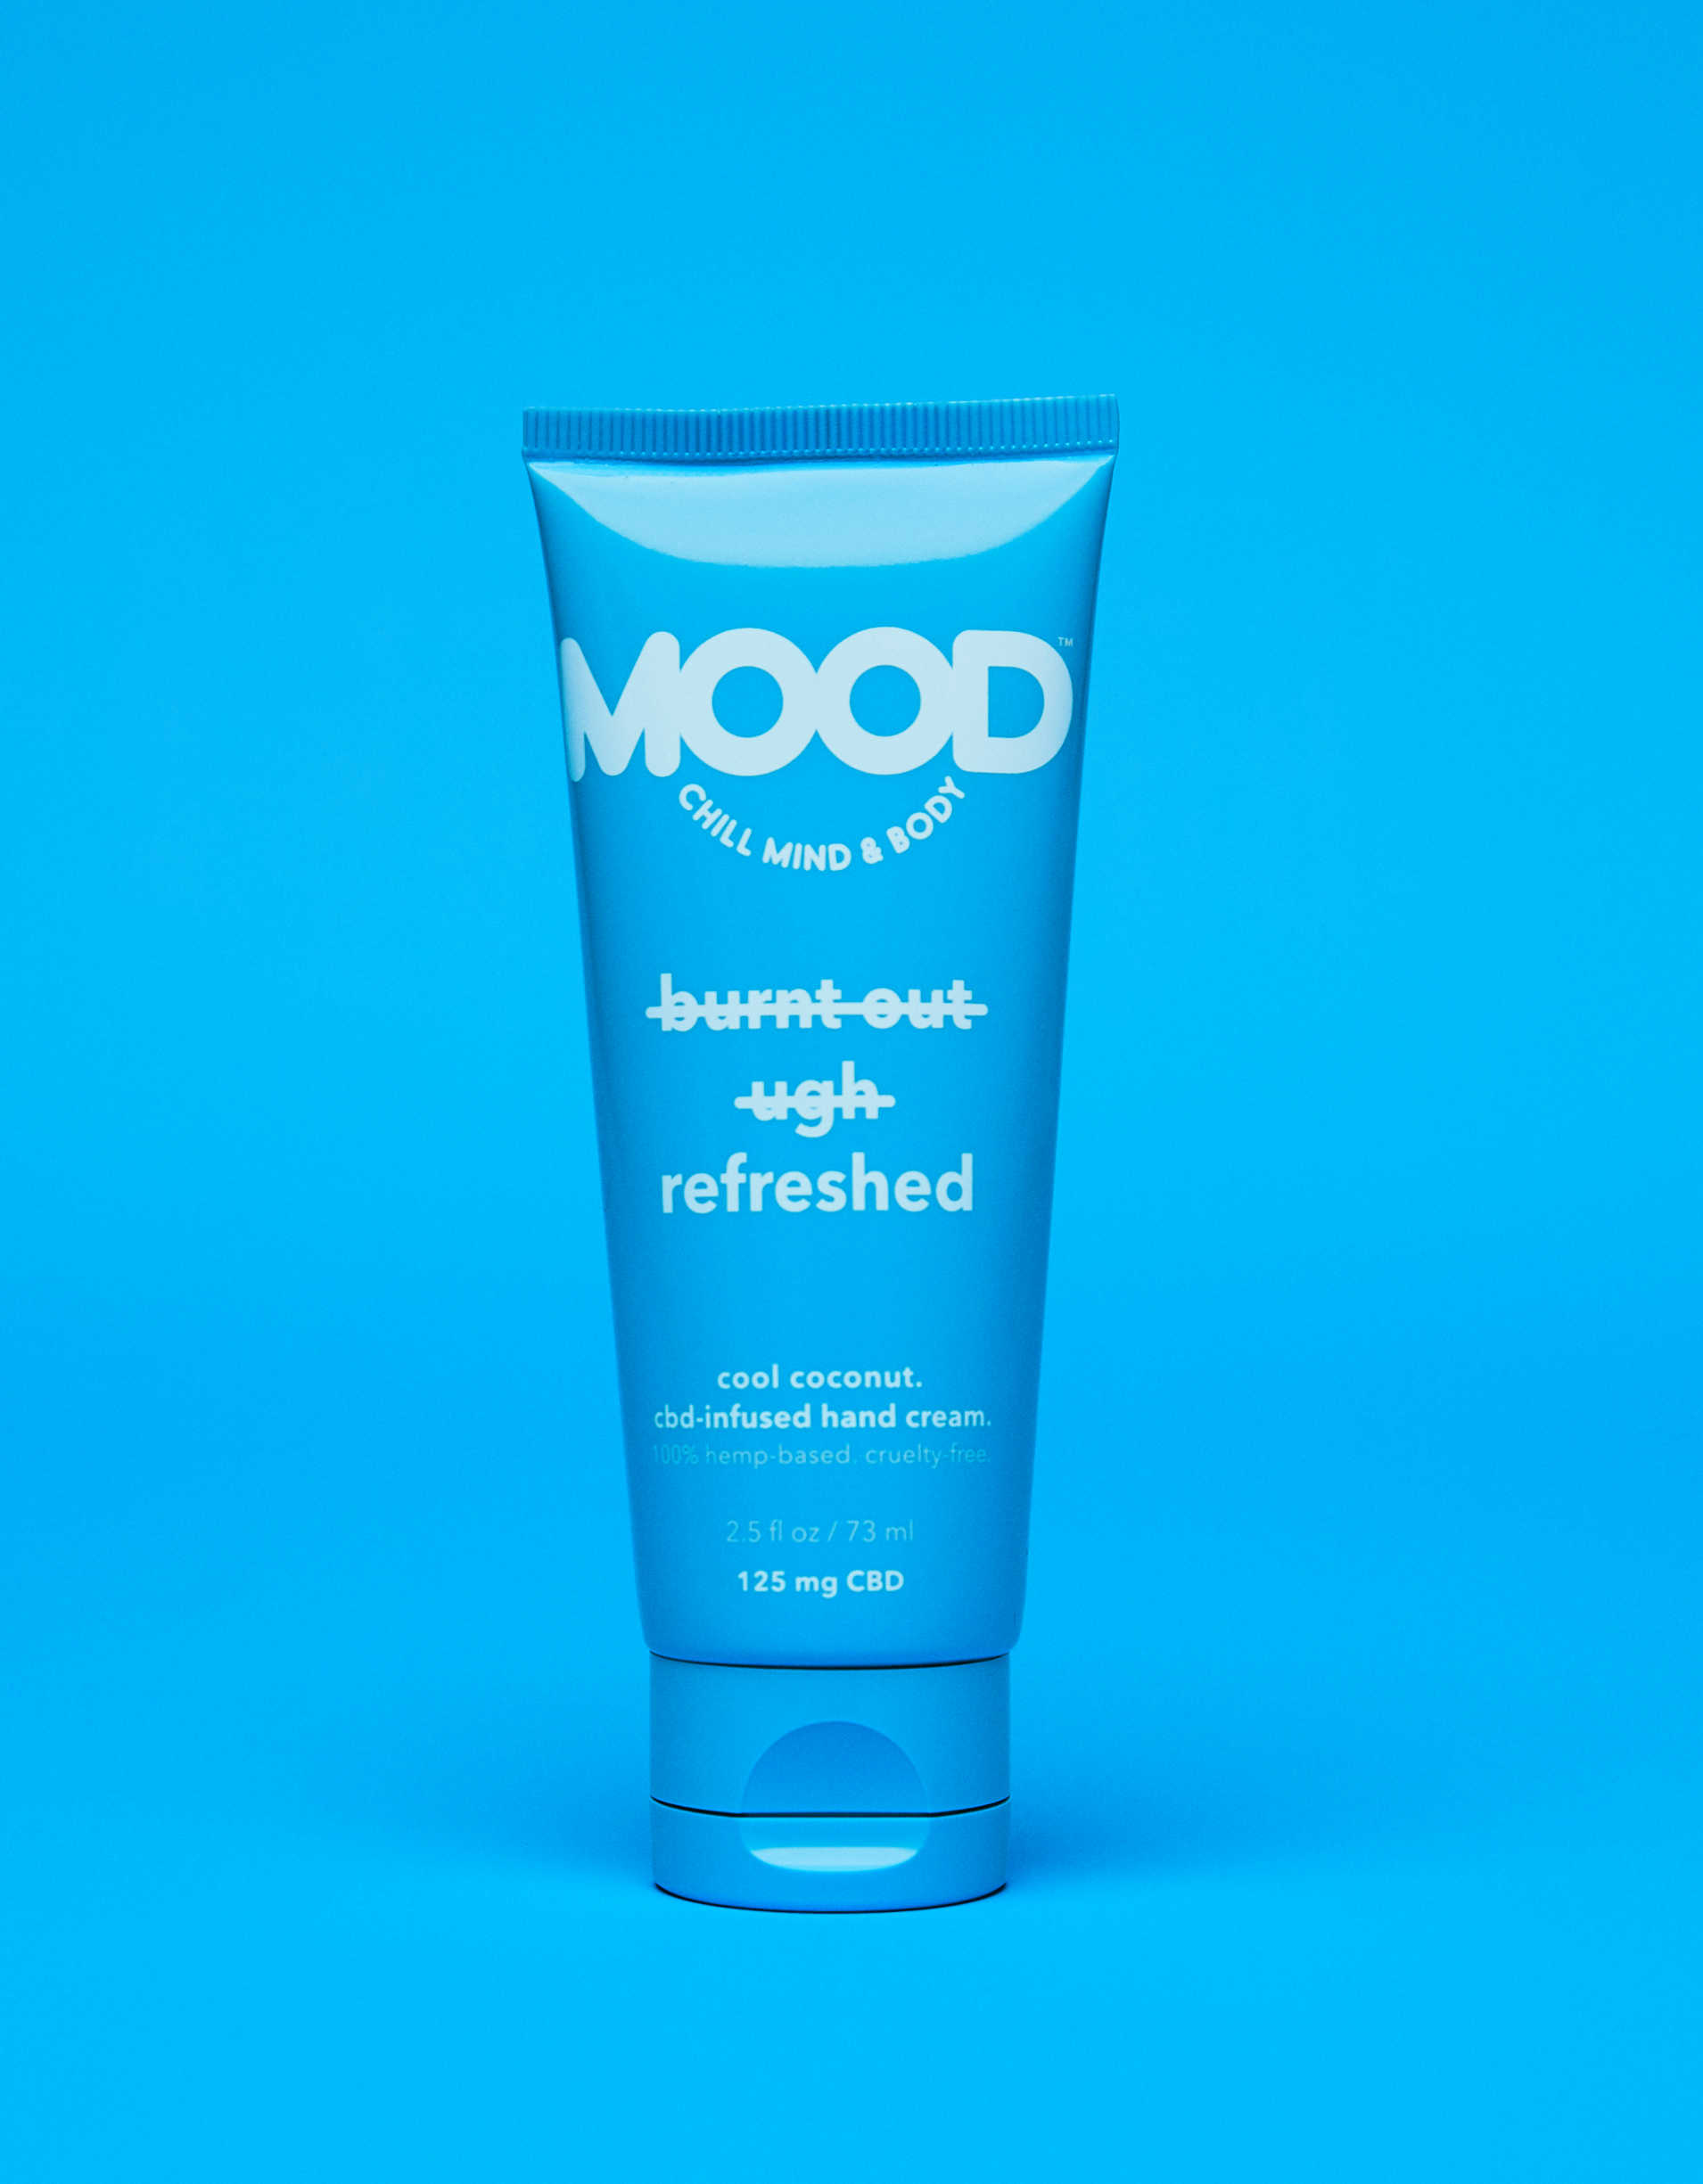 MOOD Refreshed CBD-Infused Hand Cream